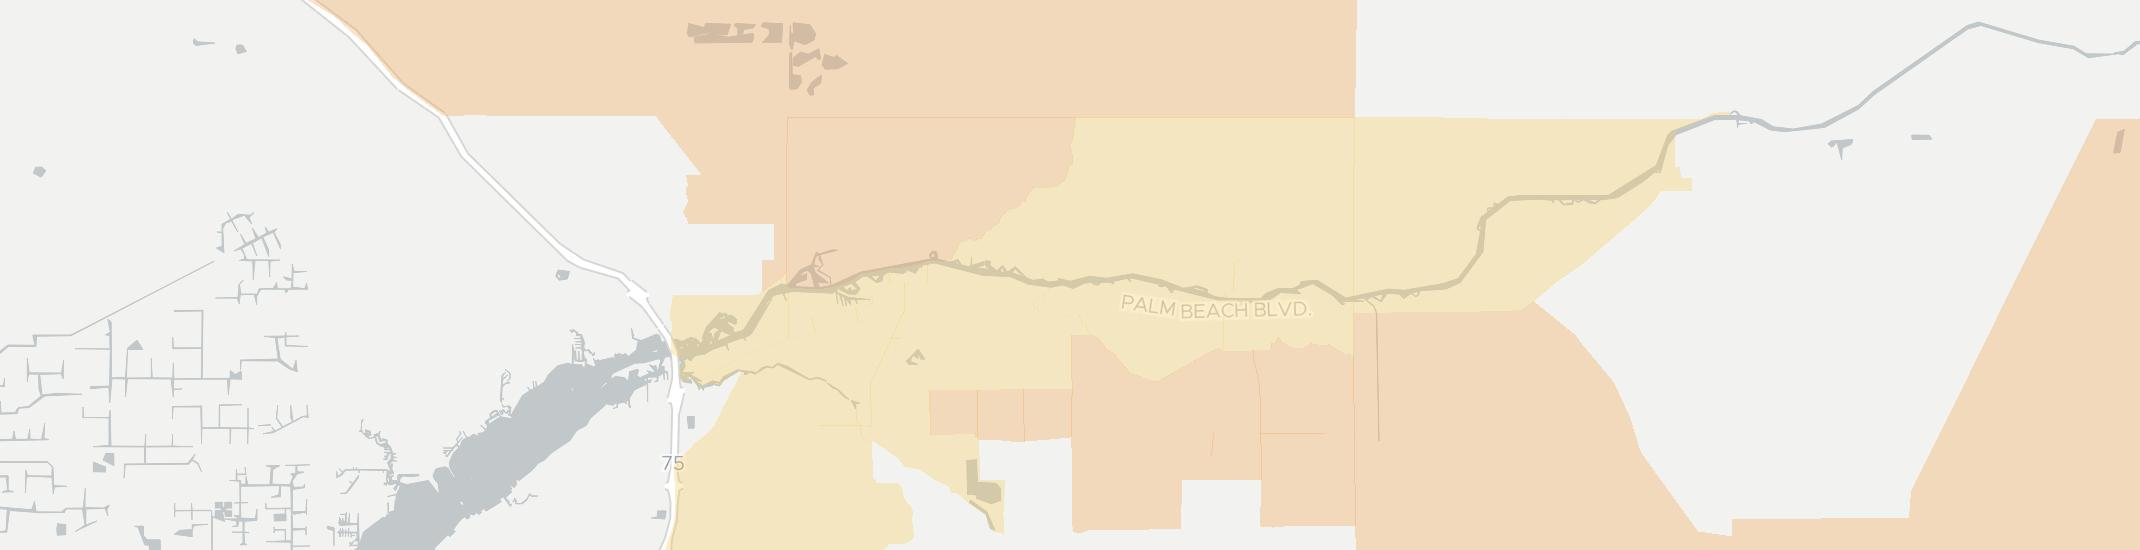 Alva Internet Competition Map. Click for interactive map.